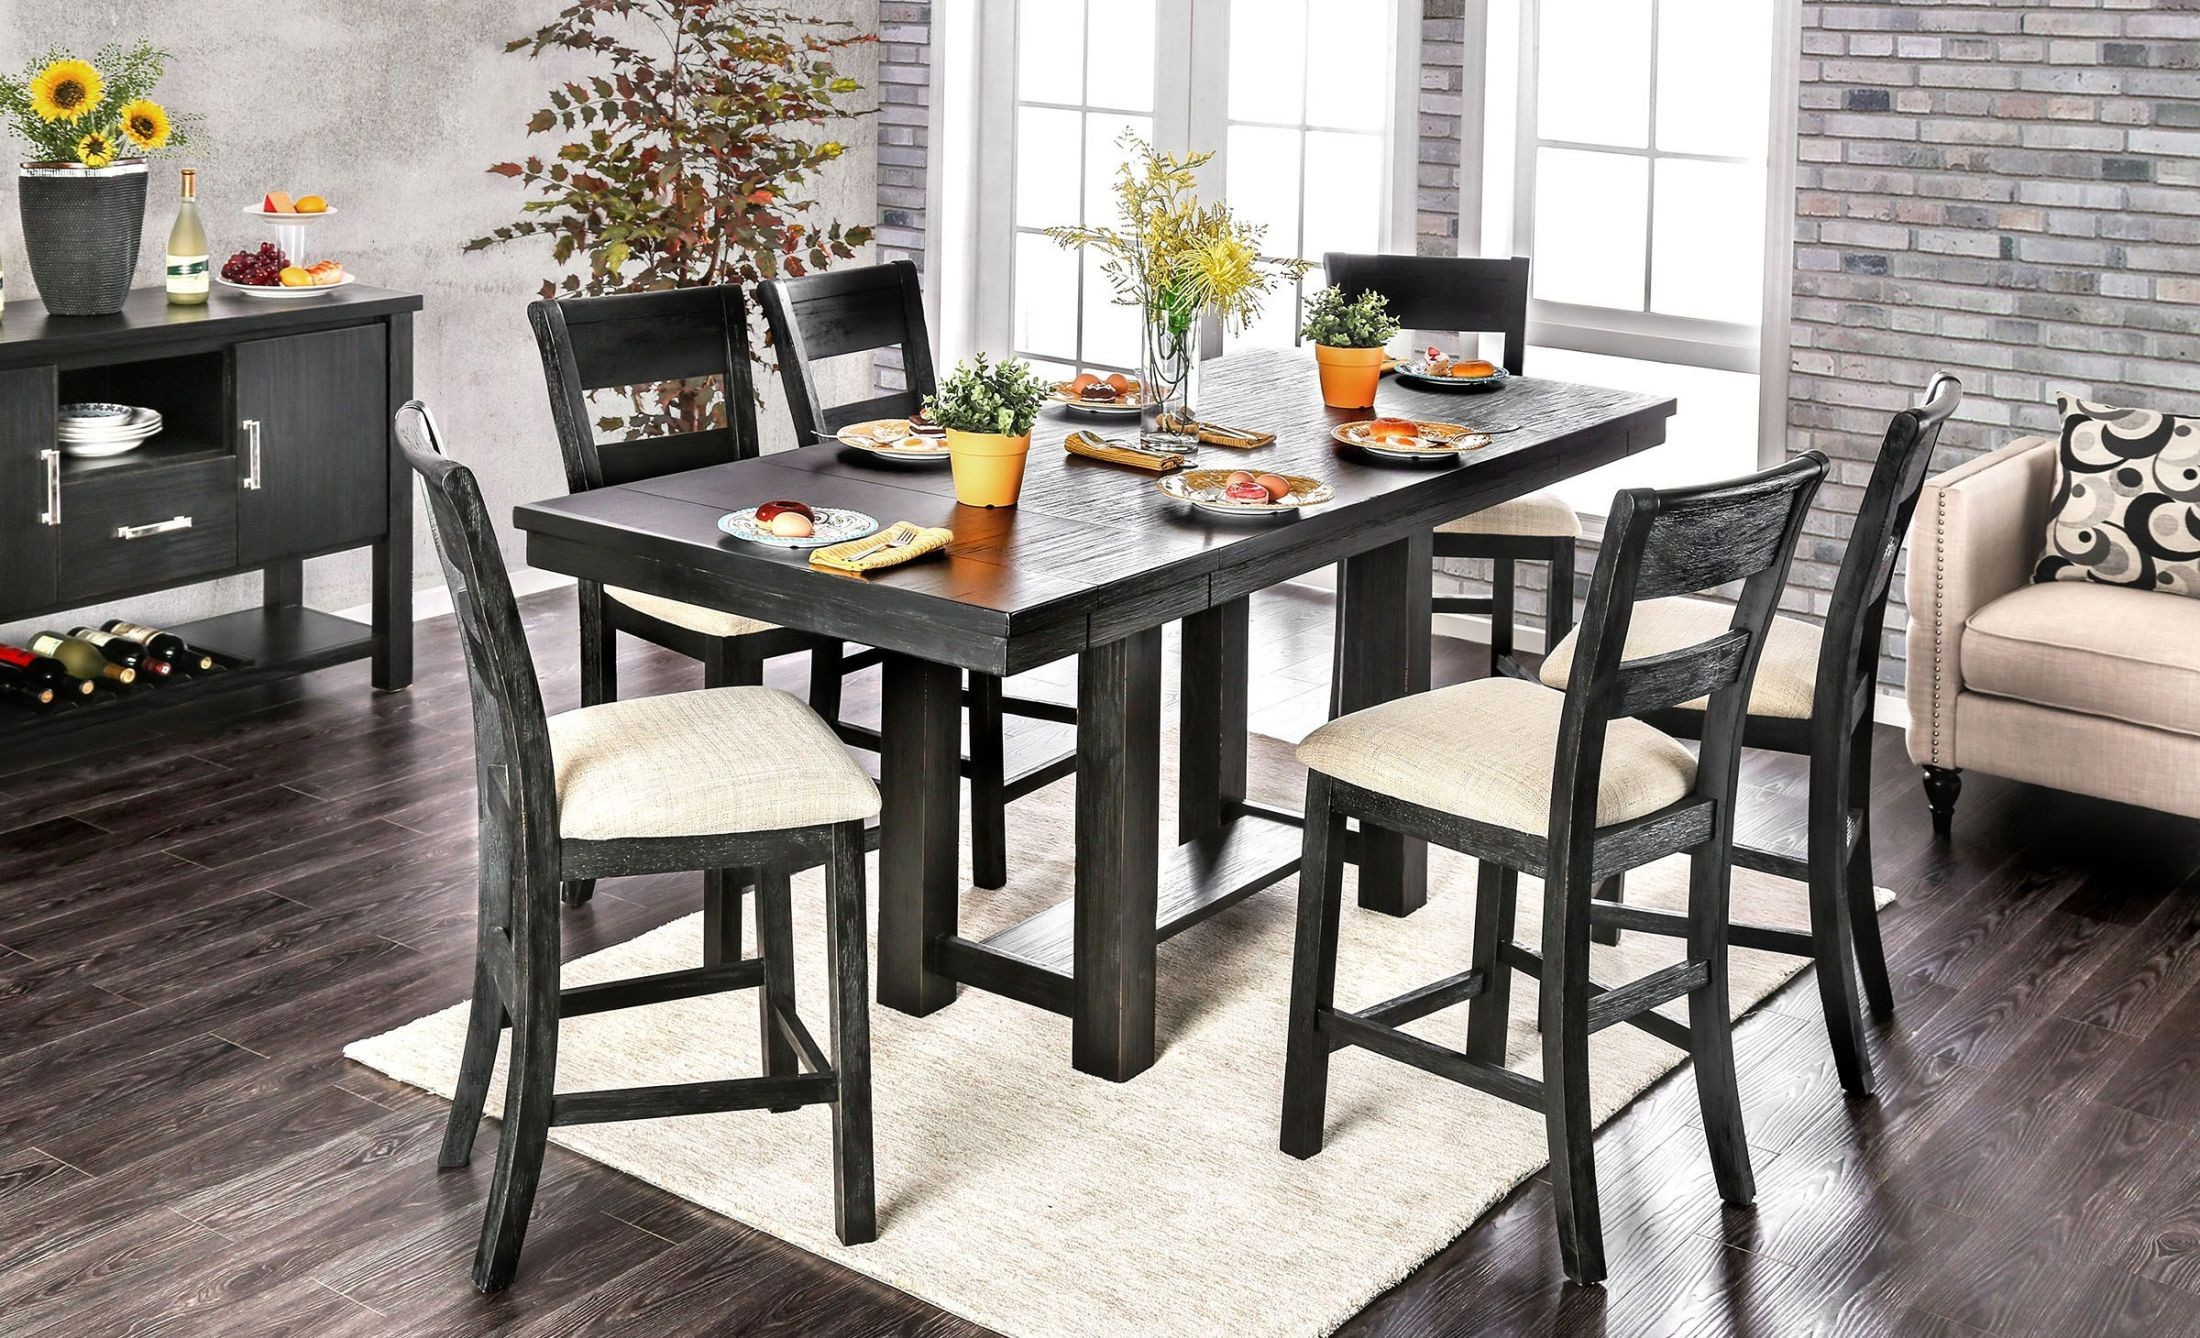 Thomaston Brushed Black Counter Height Dining Room Set